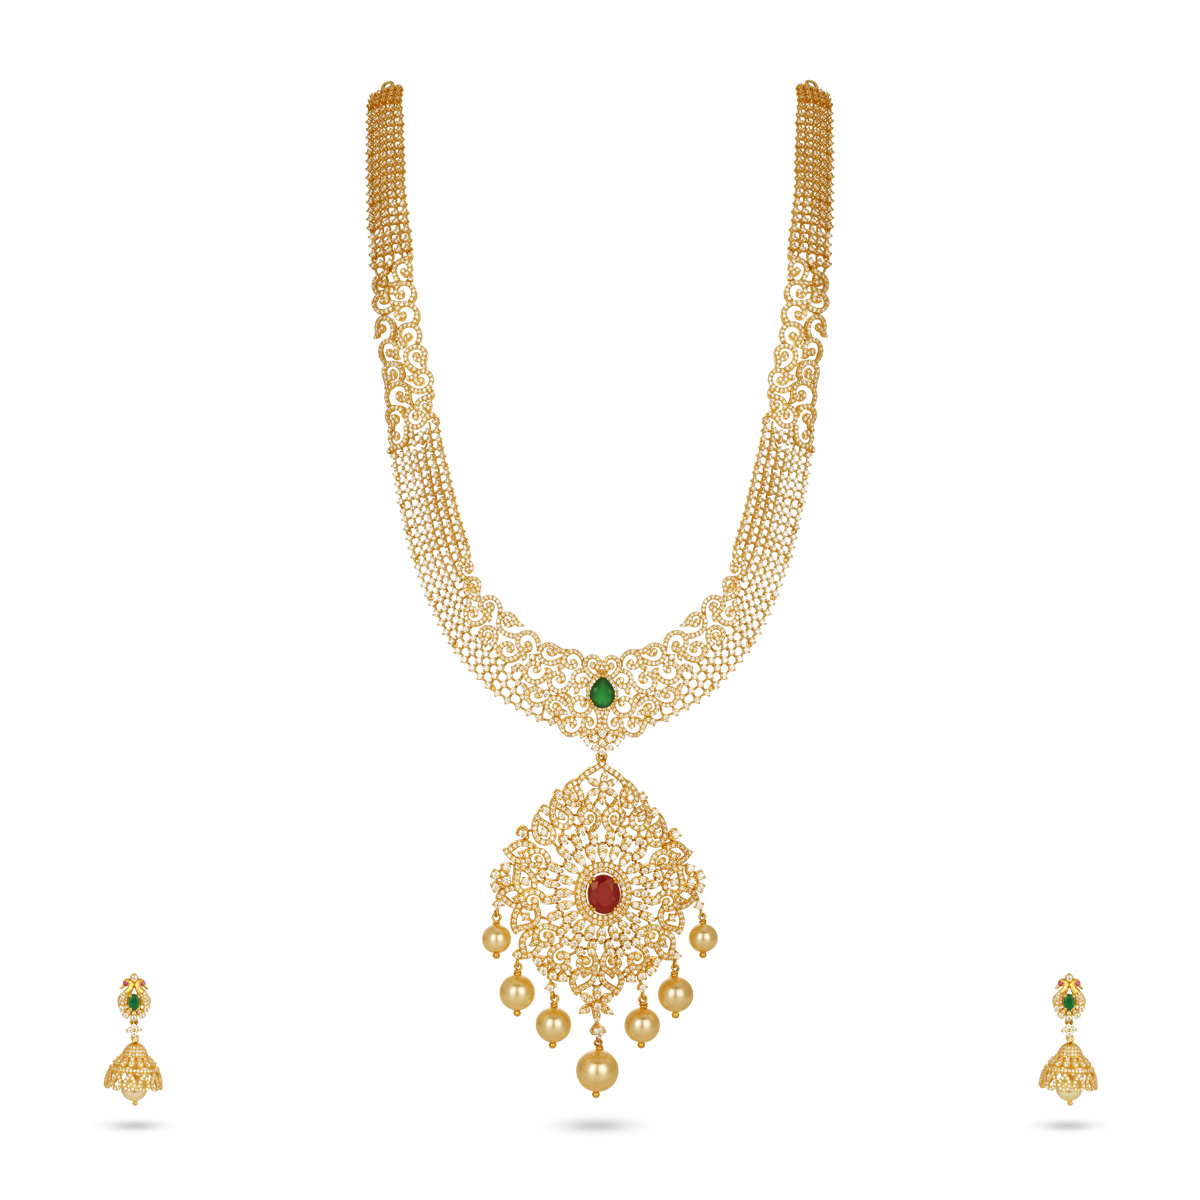 Luscious Necklace with Earrings